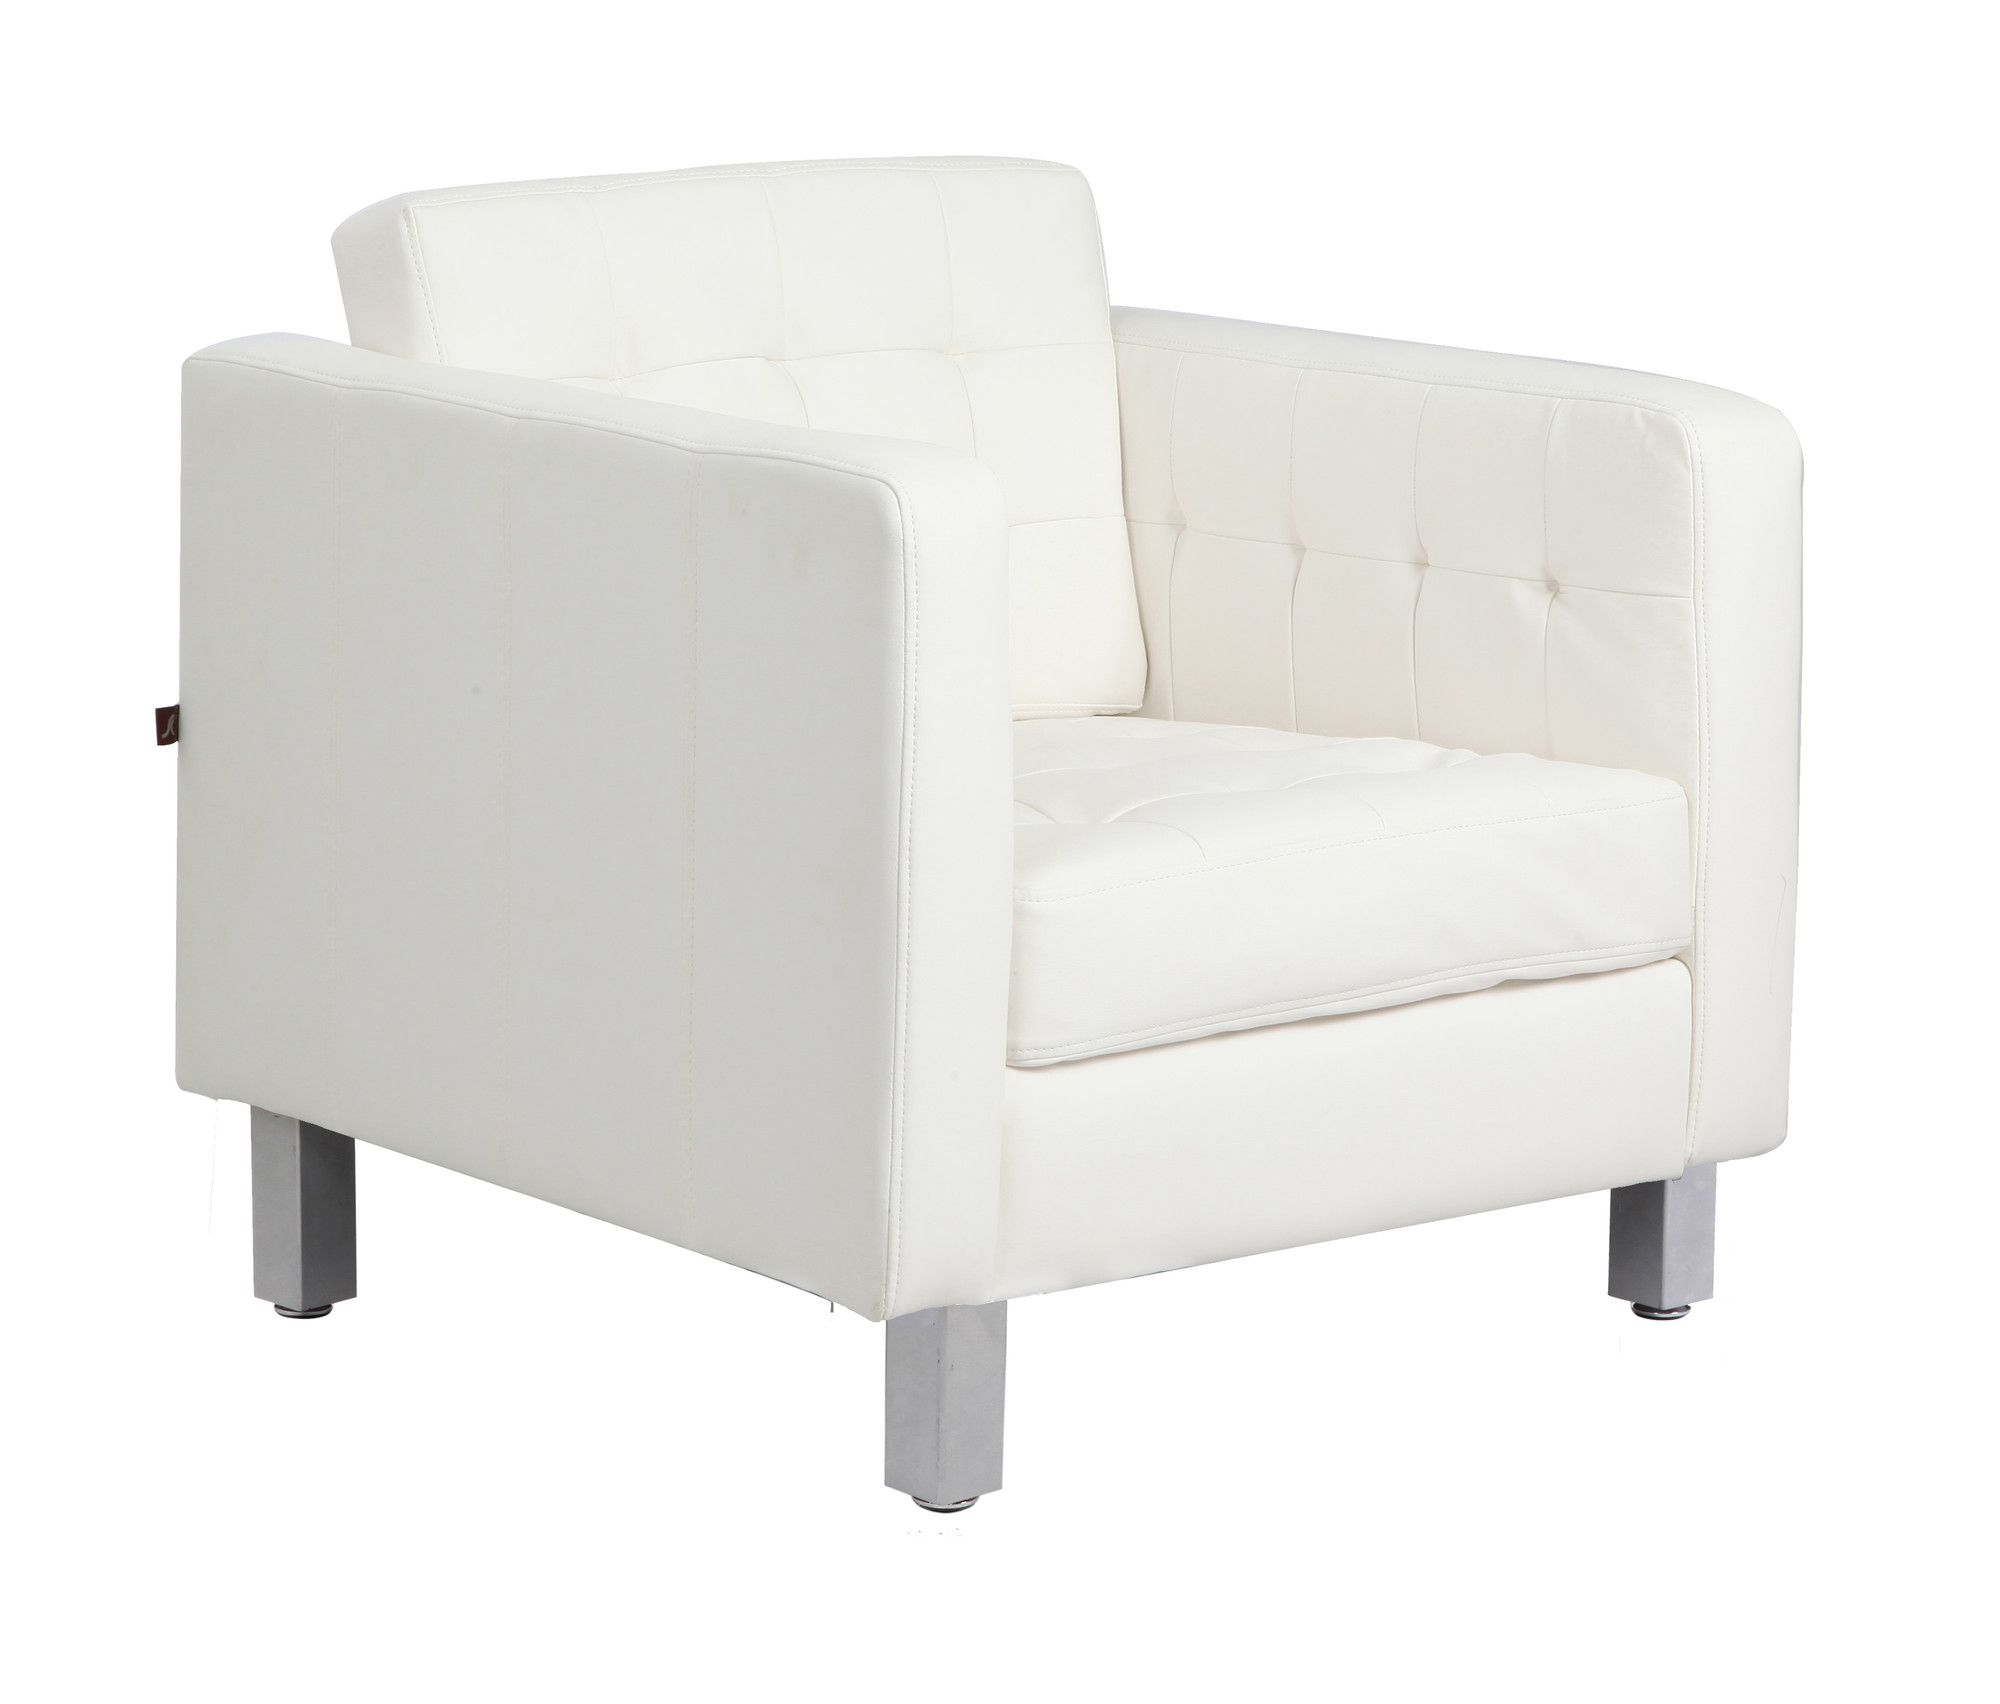 Best 37 White Modern Accent Chairs For The Living Room White 400 x 300